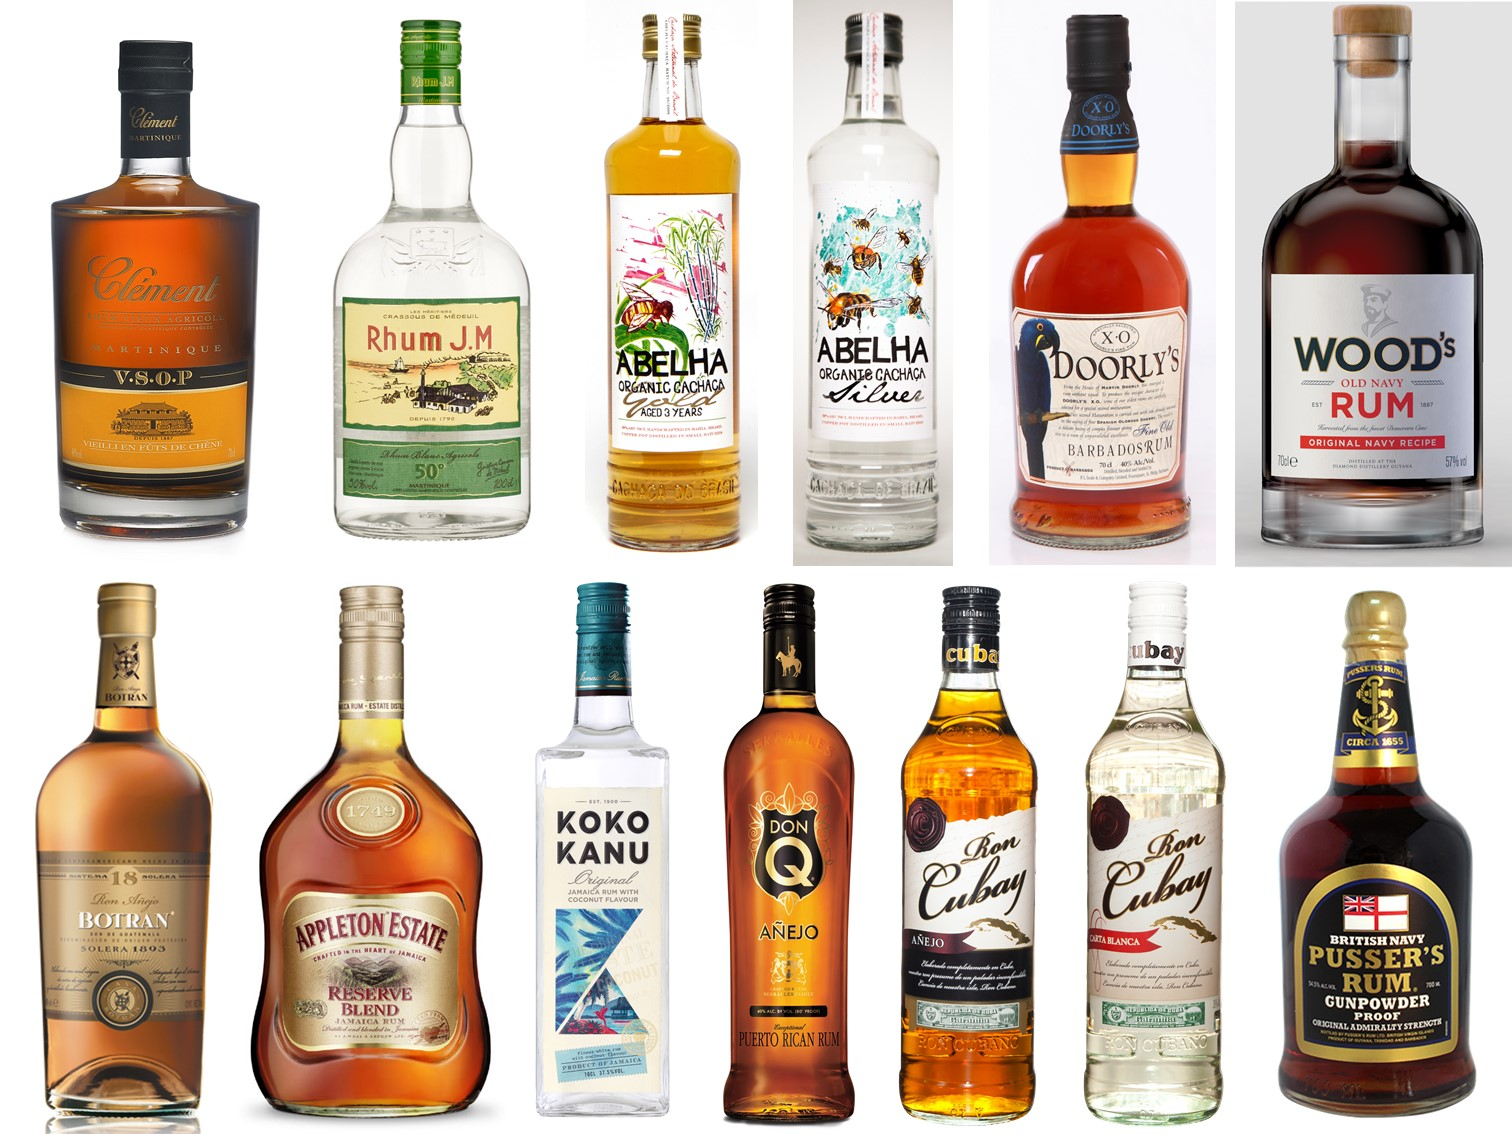 Carnival Expo 2017 Featured Rums